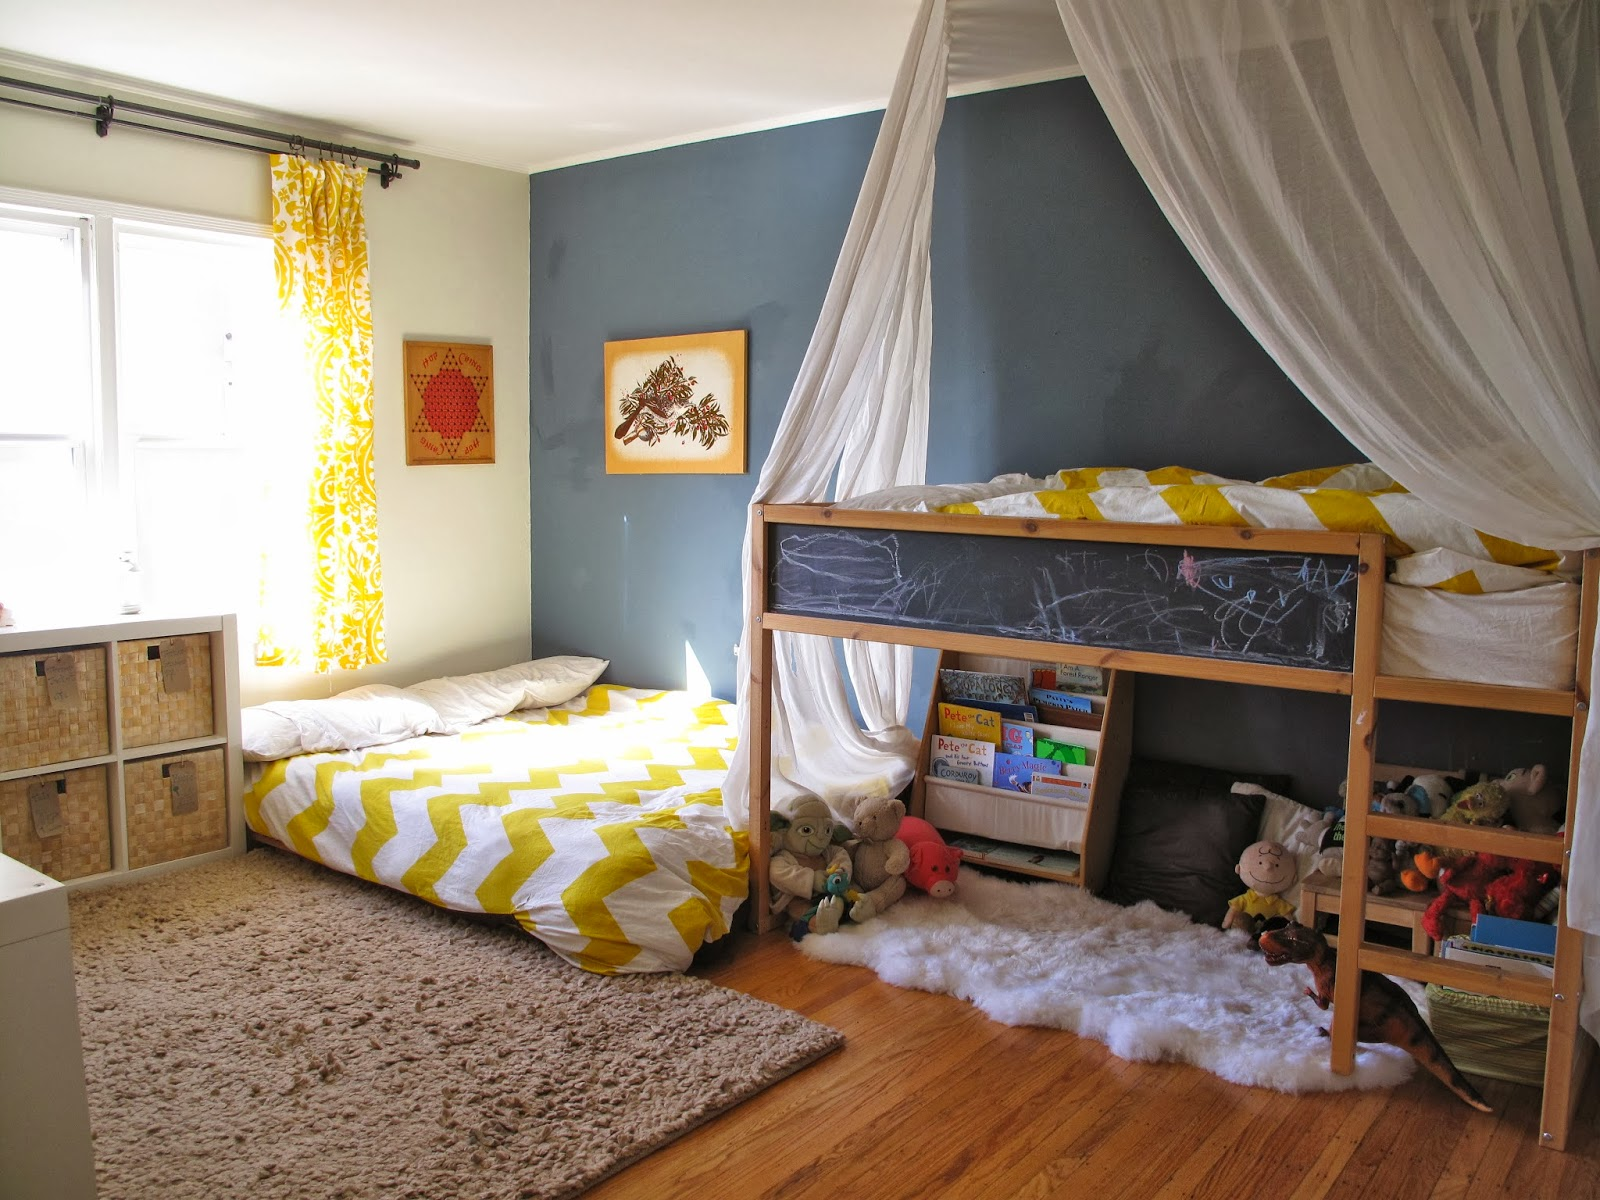 Two bedrooms and a baby tt 39 s montessori room shared boy 4 beds in one room